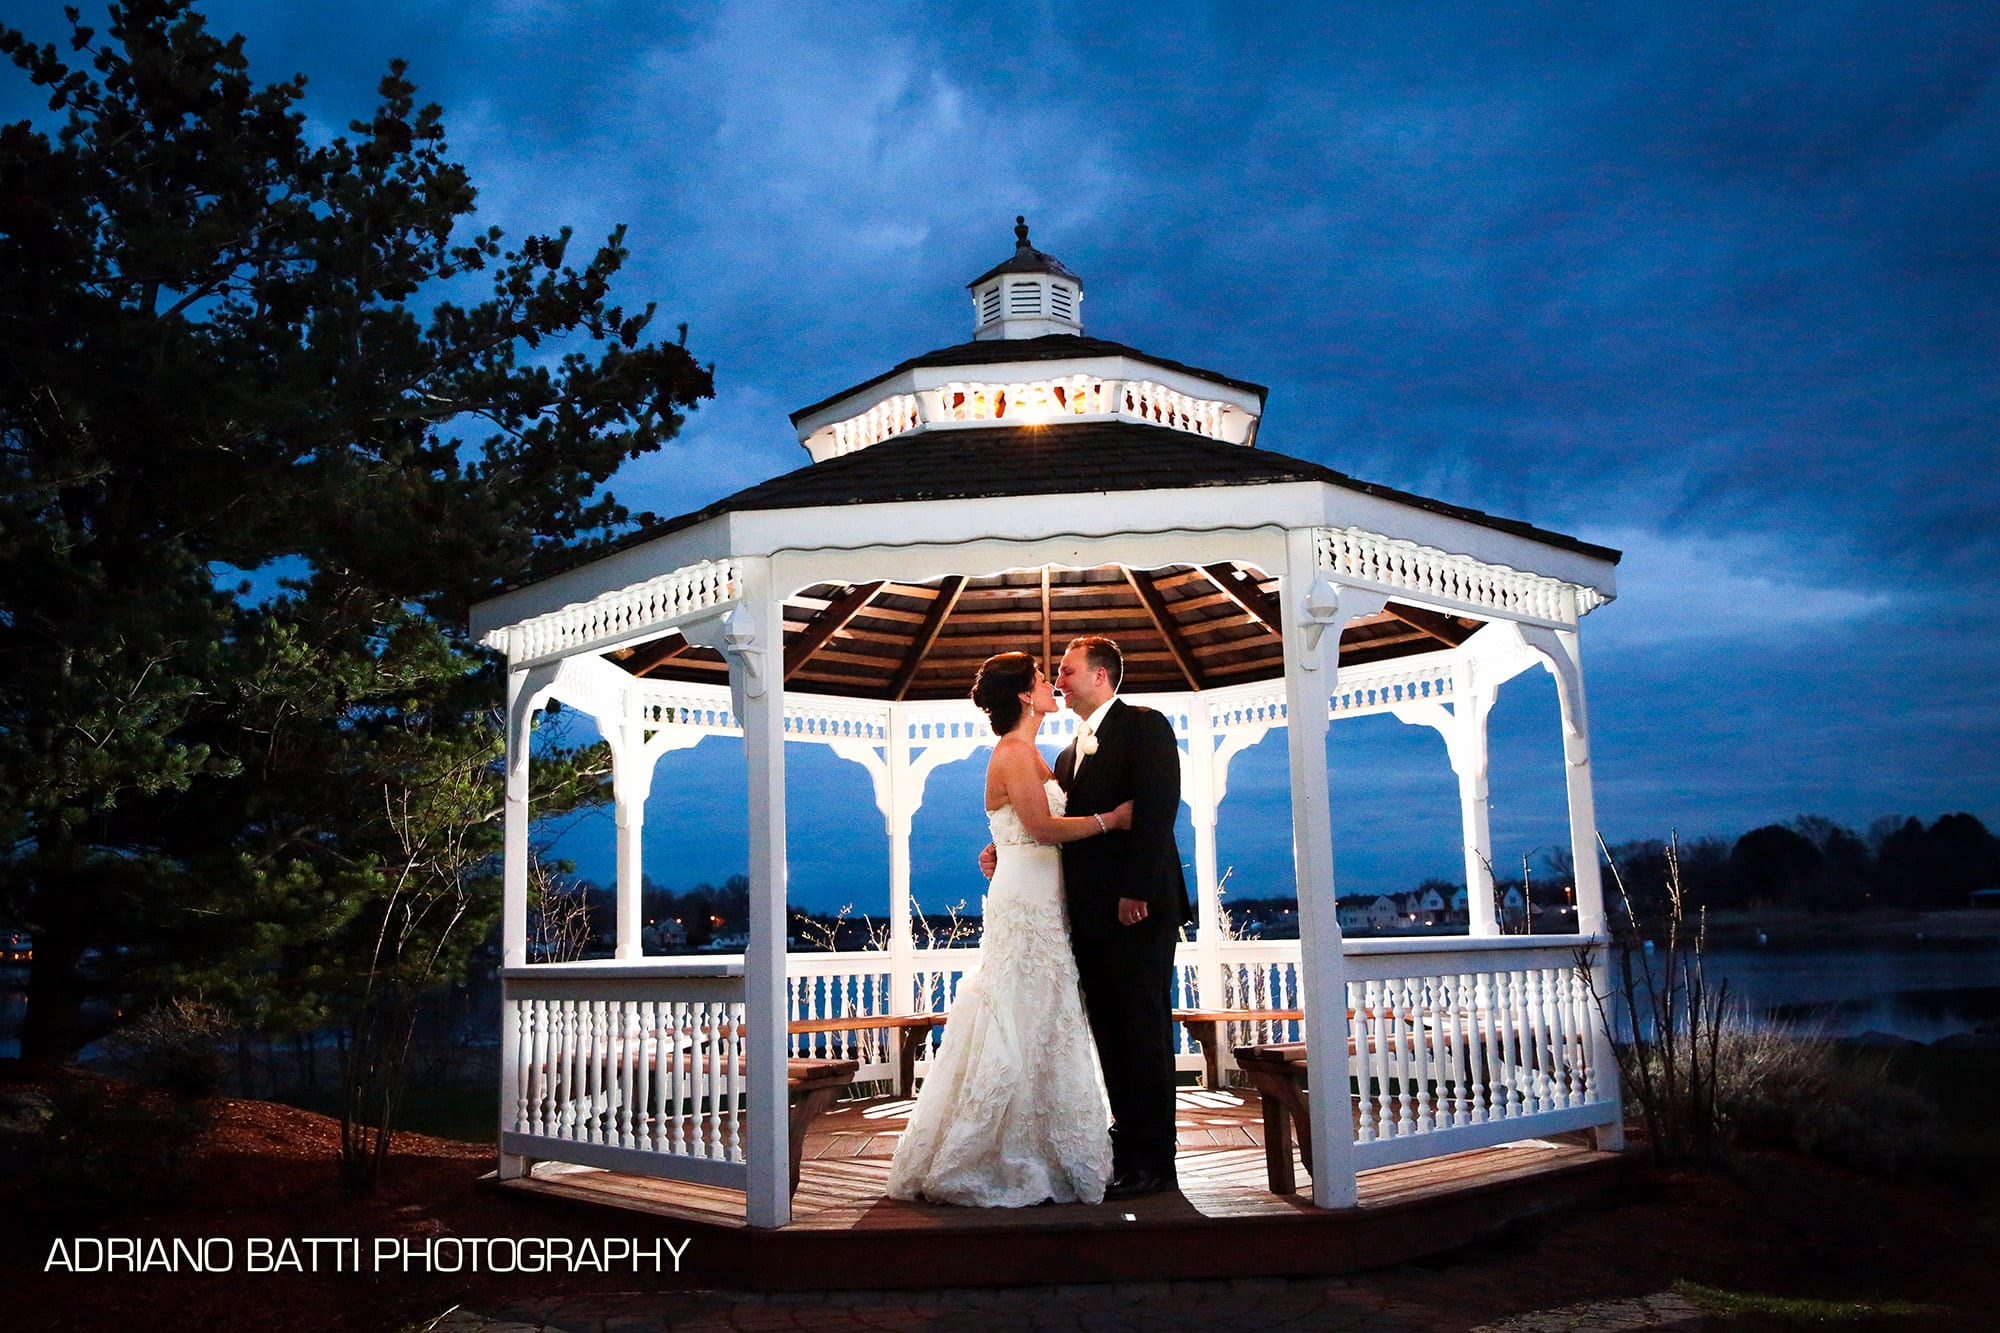 A couple stands in the backlit Danversport Gazebo by the water at dusk.